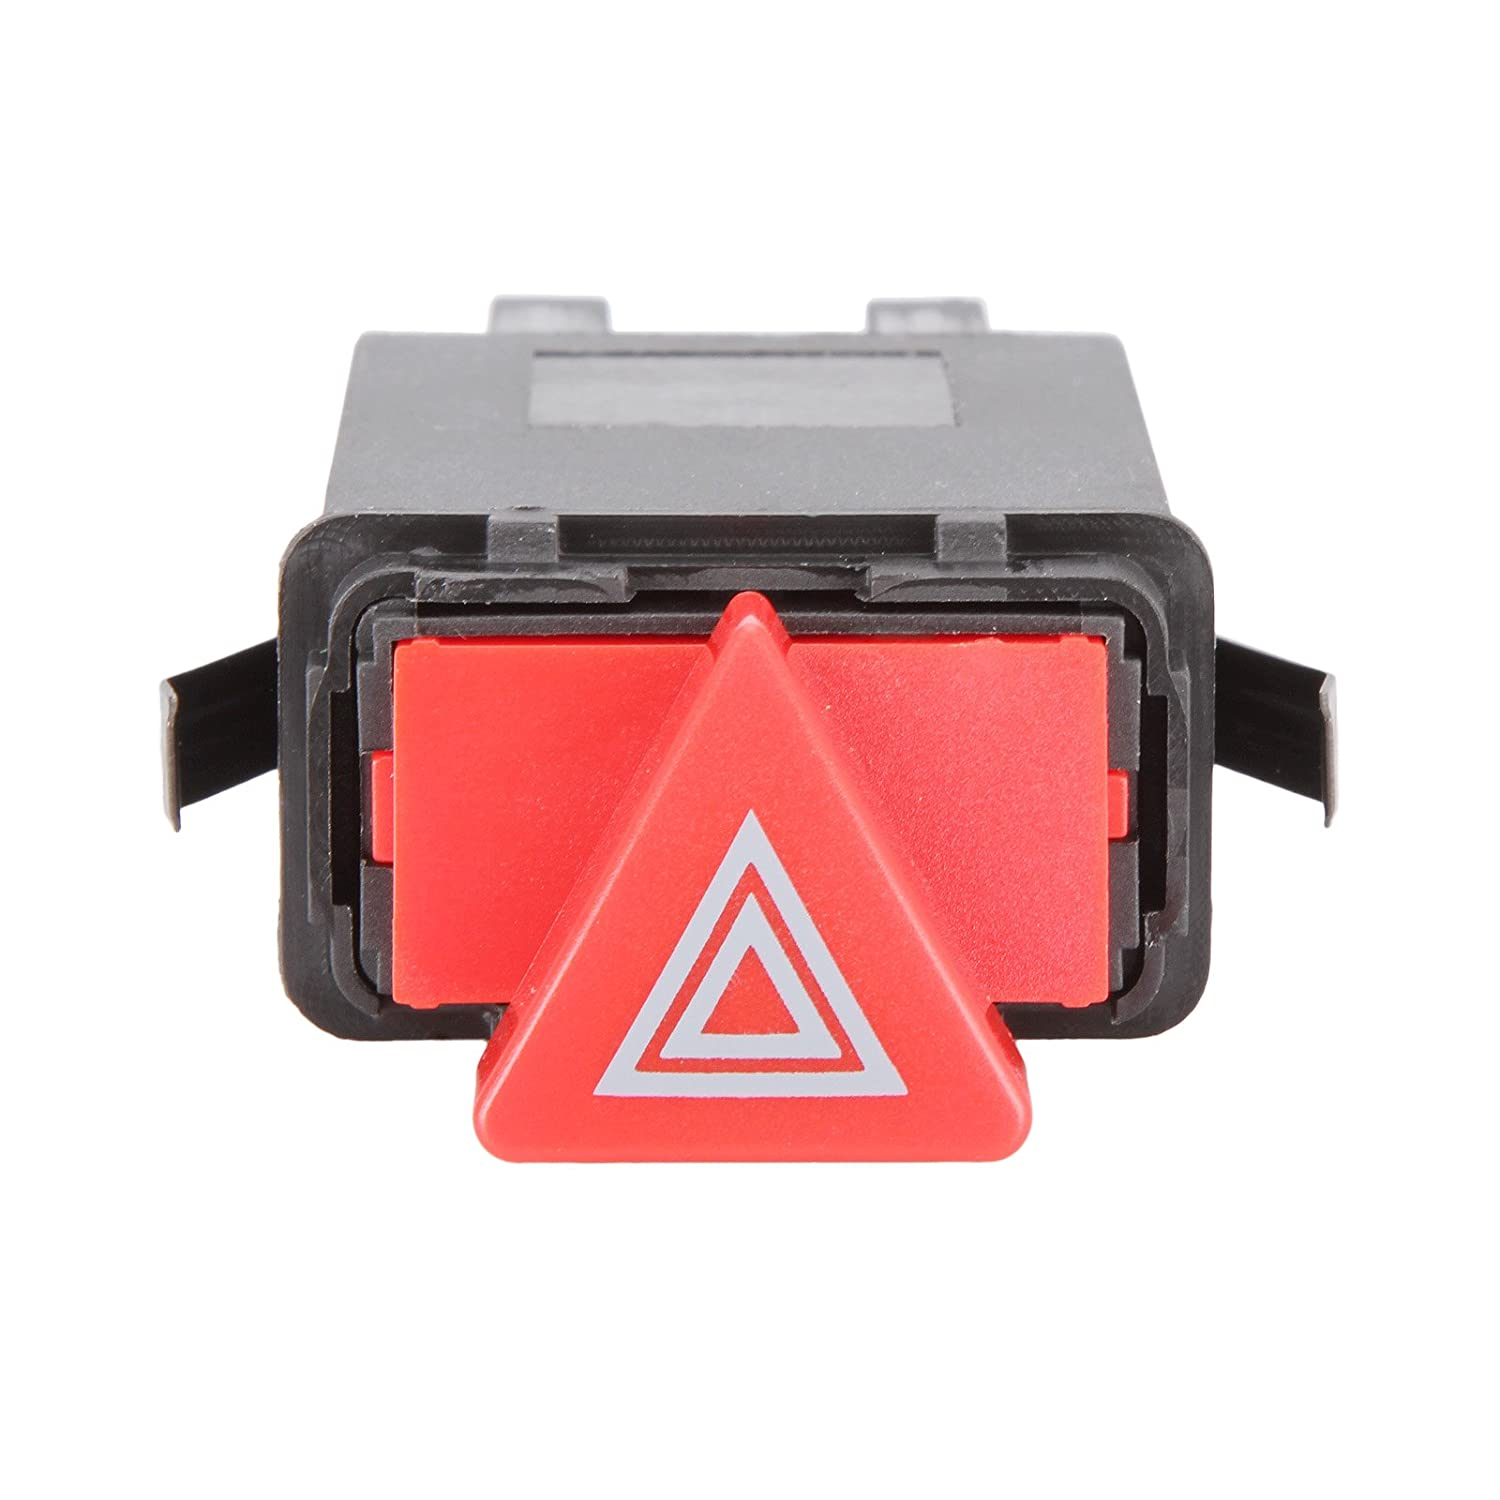 Dromedary Hazard Warning Light Switch Flasher Relay For 4B0941509D A6 4B C5 A6 Avant 4Bh Dromedary Autoparts